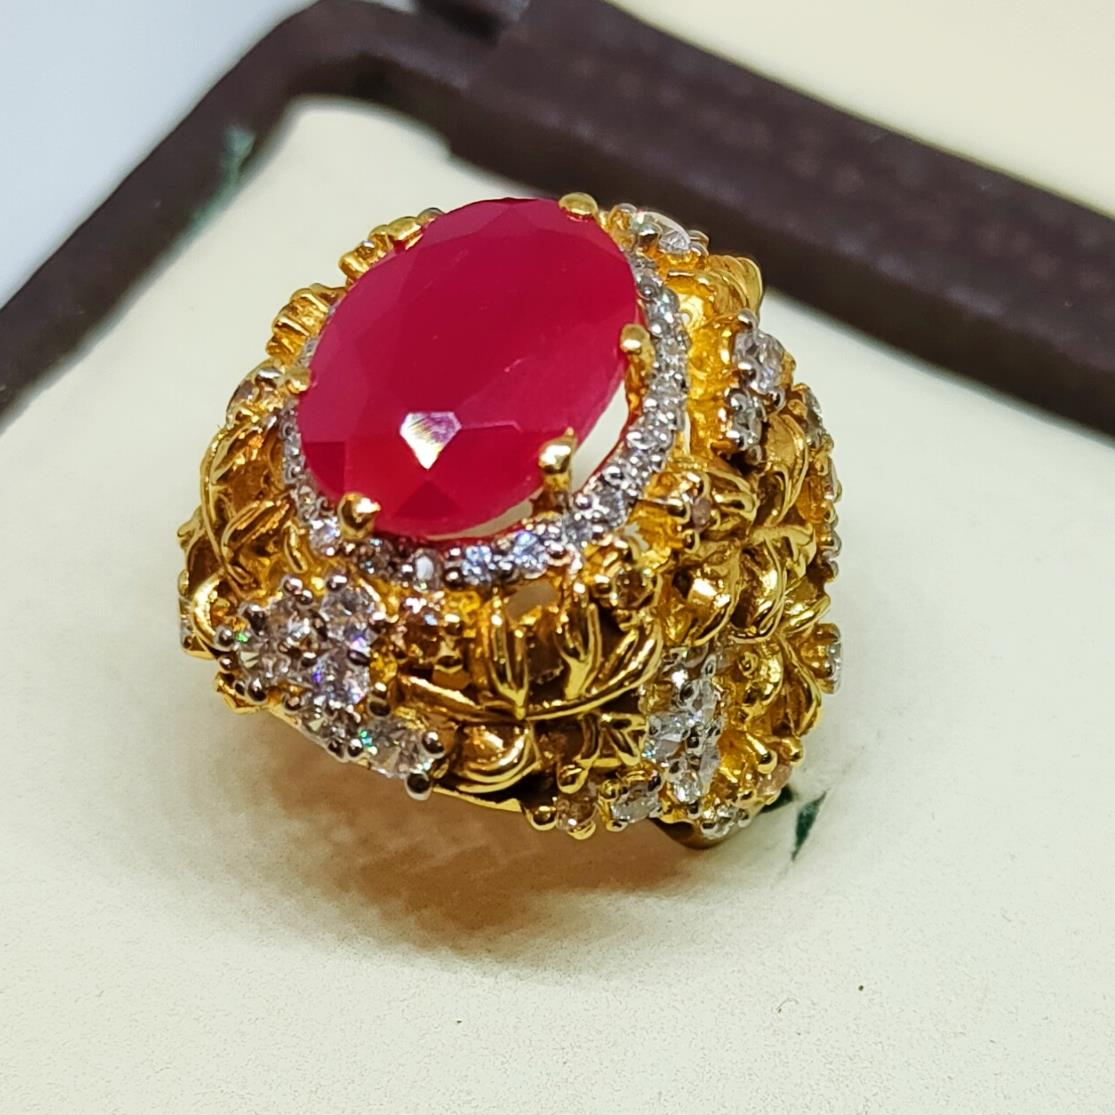 Gold Plated 925 Silver Ring Italian 5 natural gemstones pakistan + 925 silver jewelry online